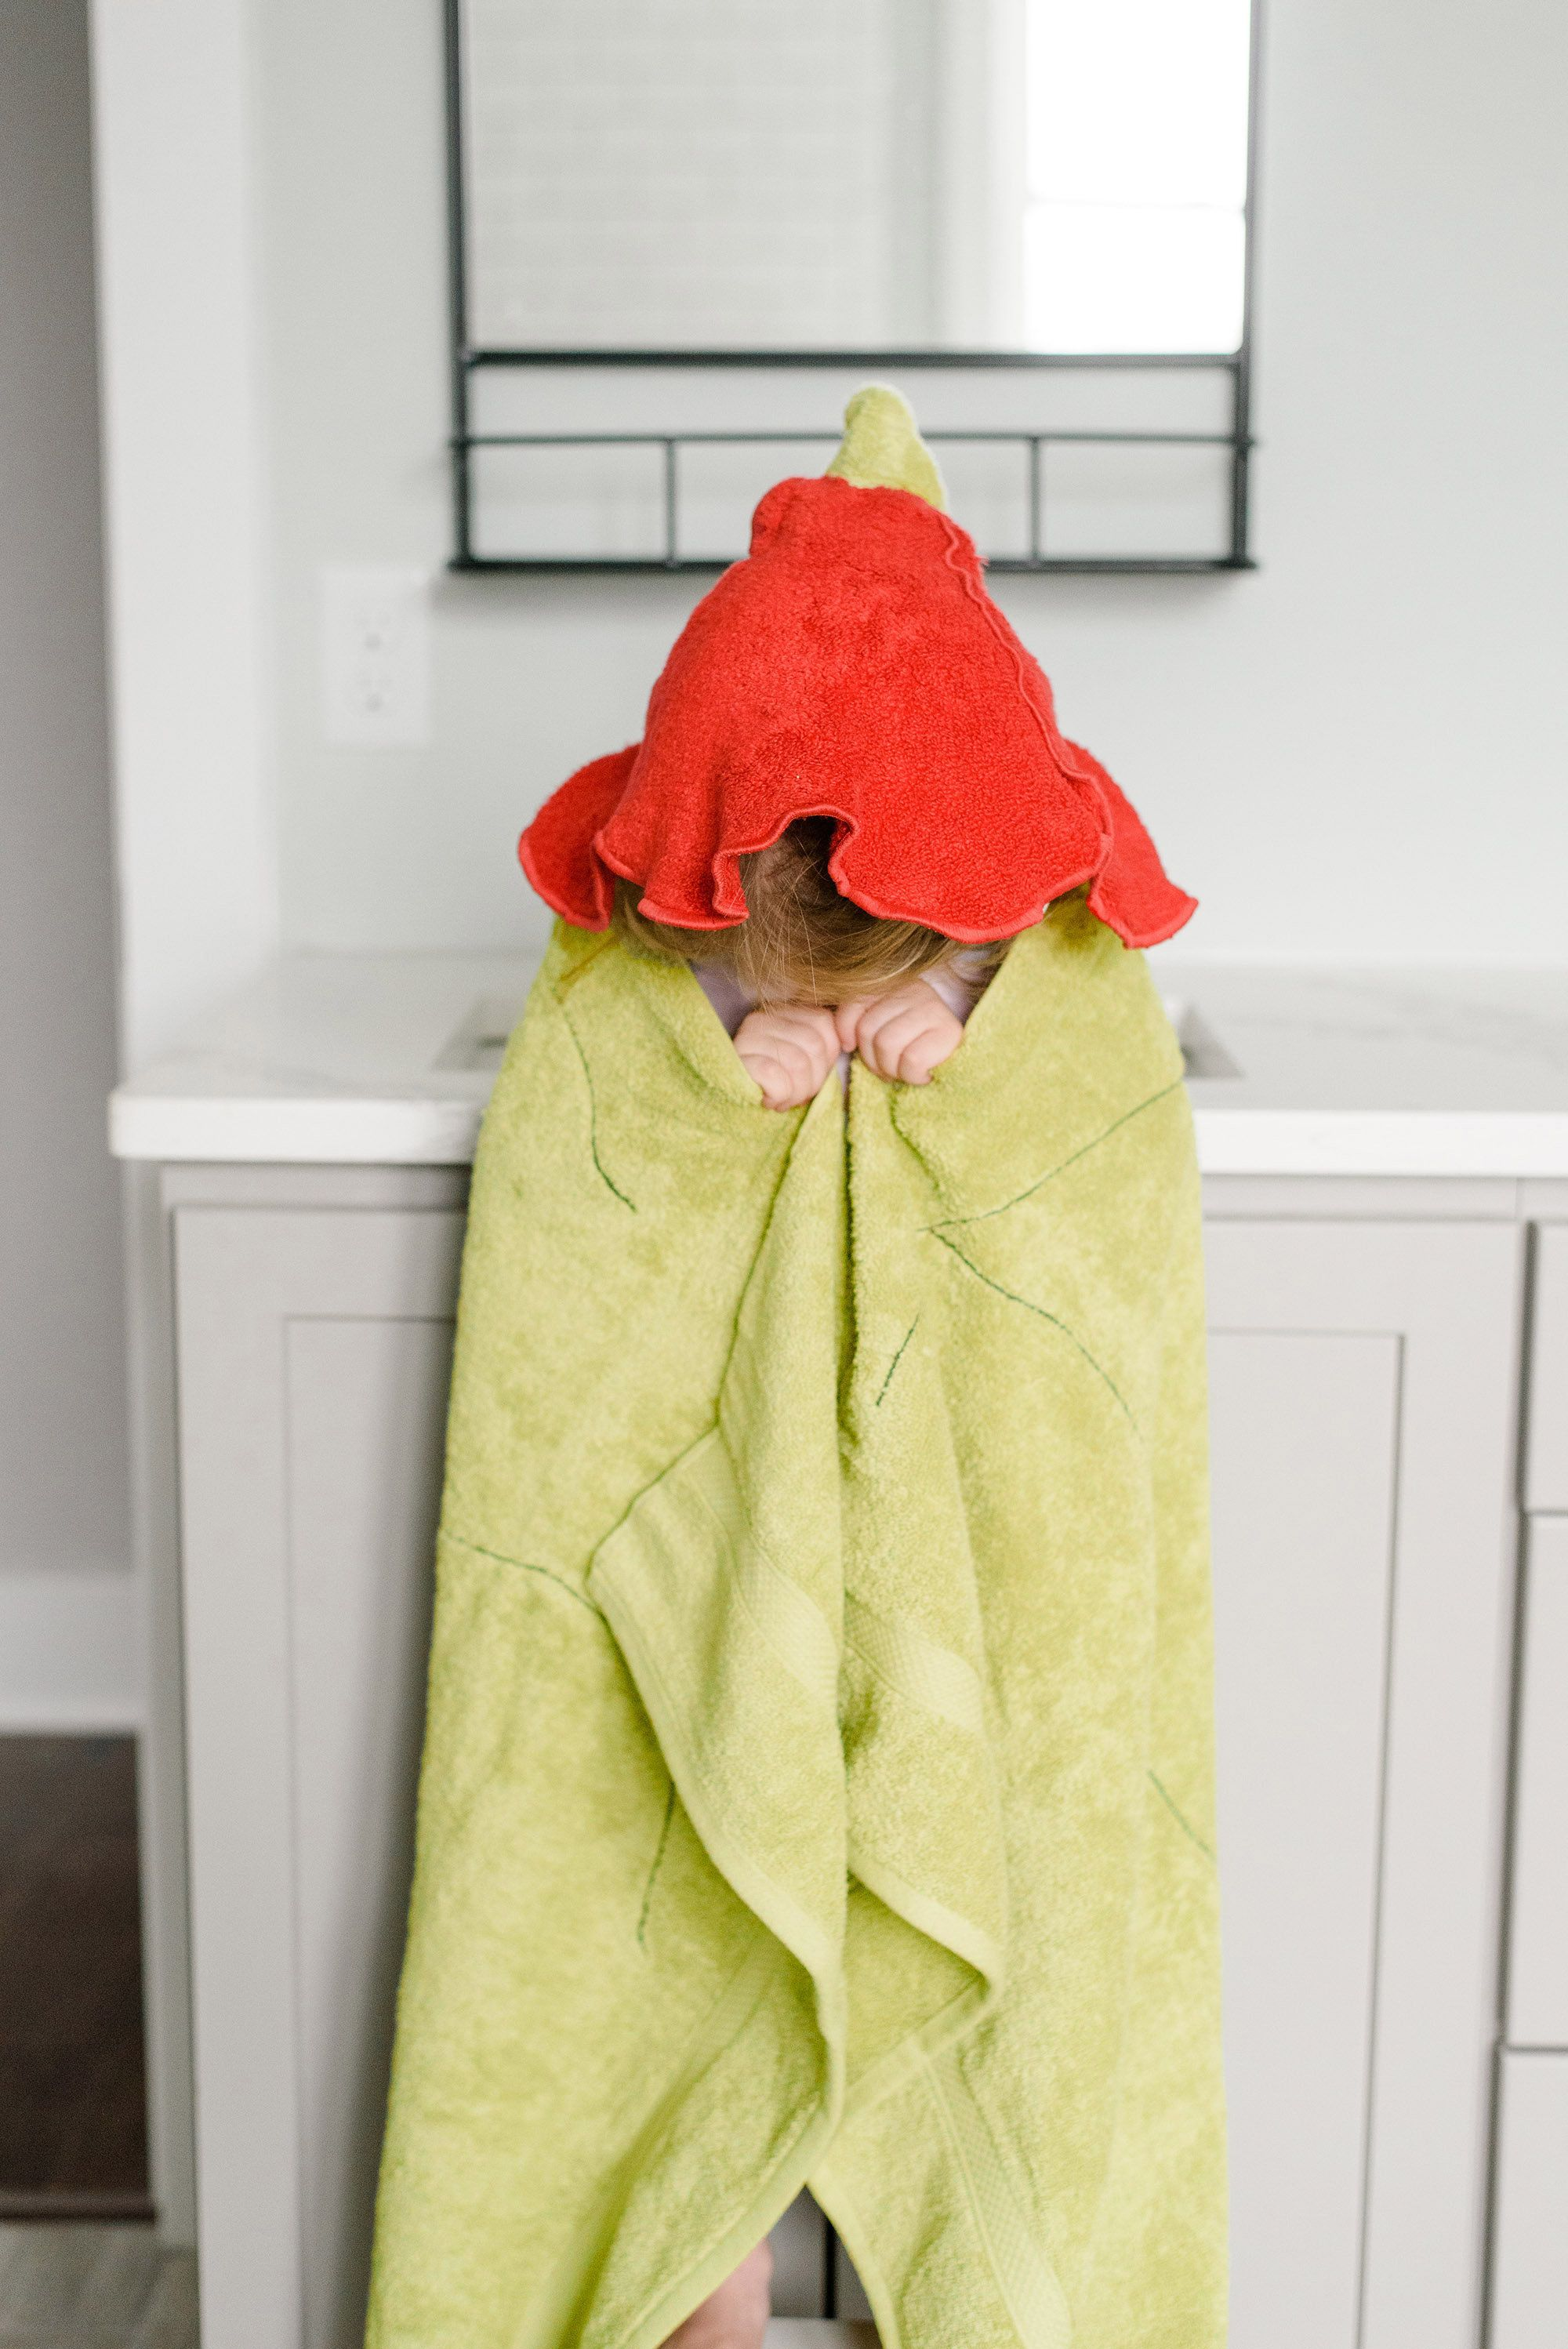 Flower Fairy Hooded Bath Towel In Soft Fast Drying Cotton